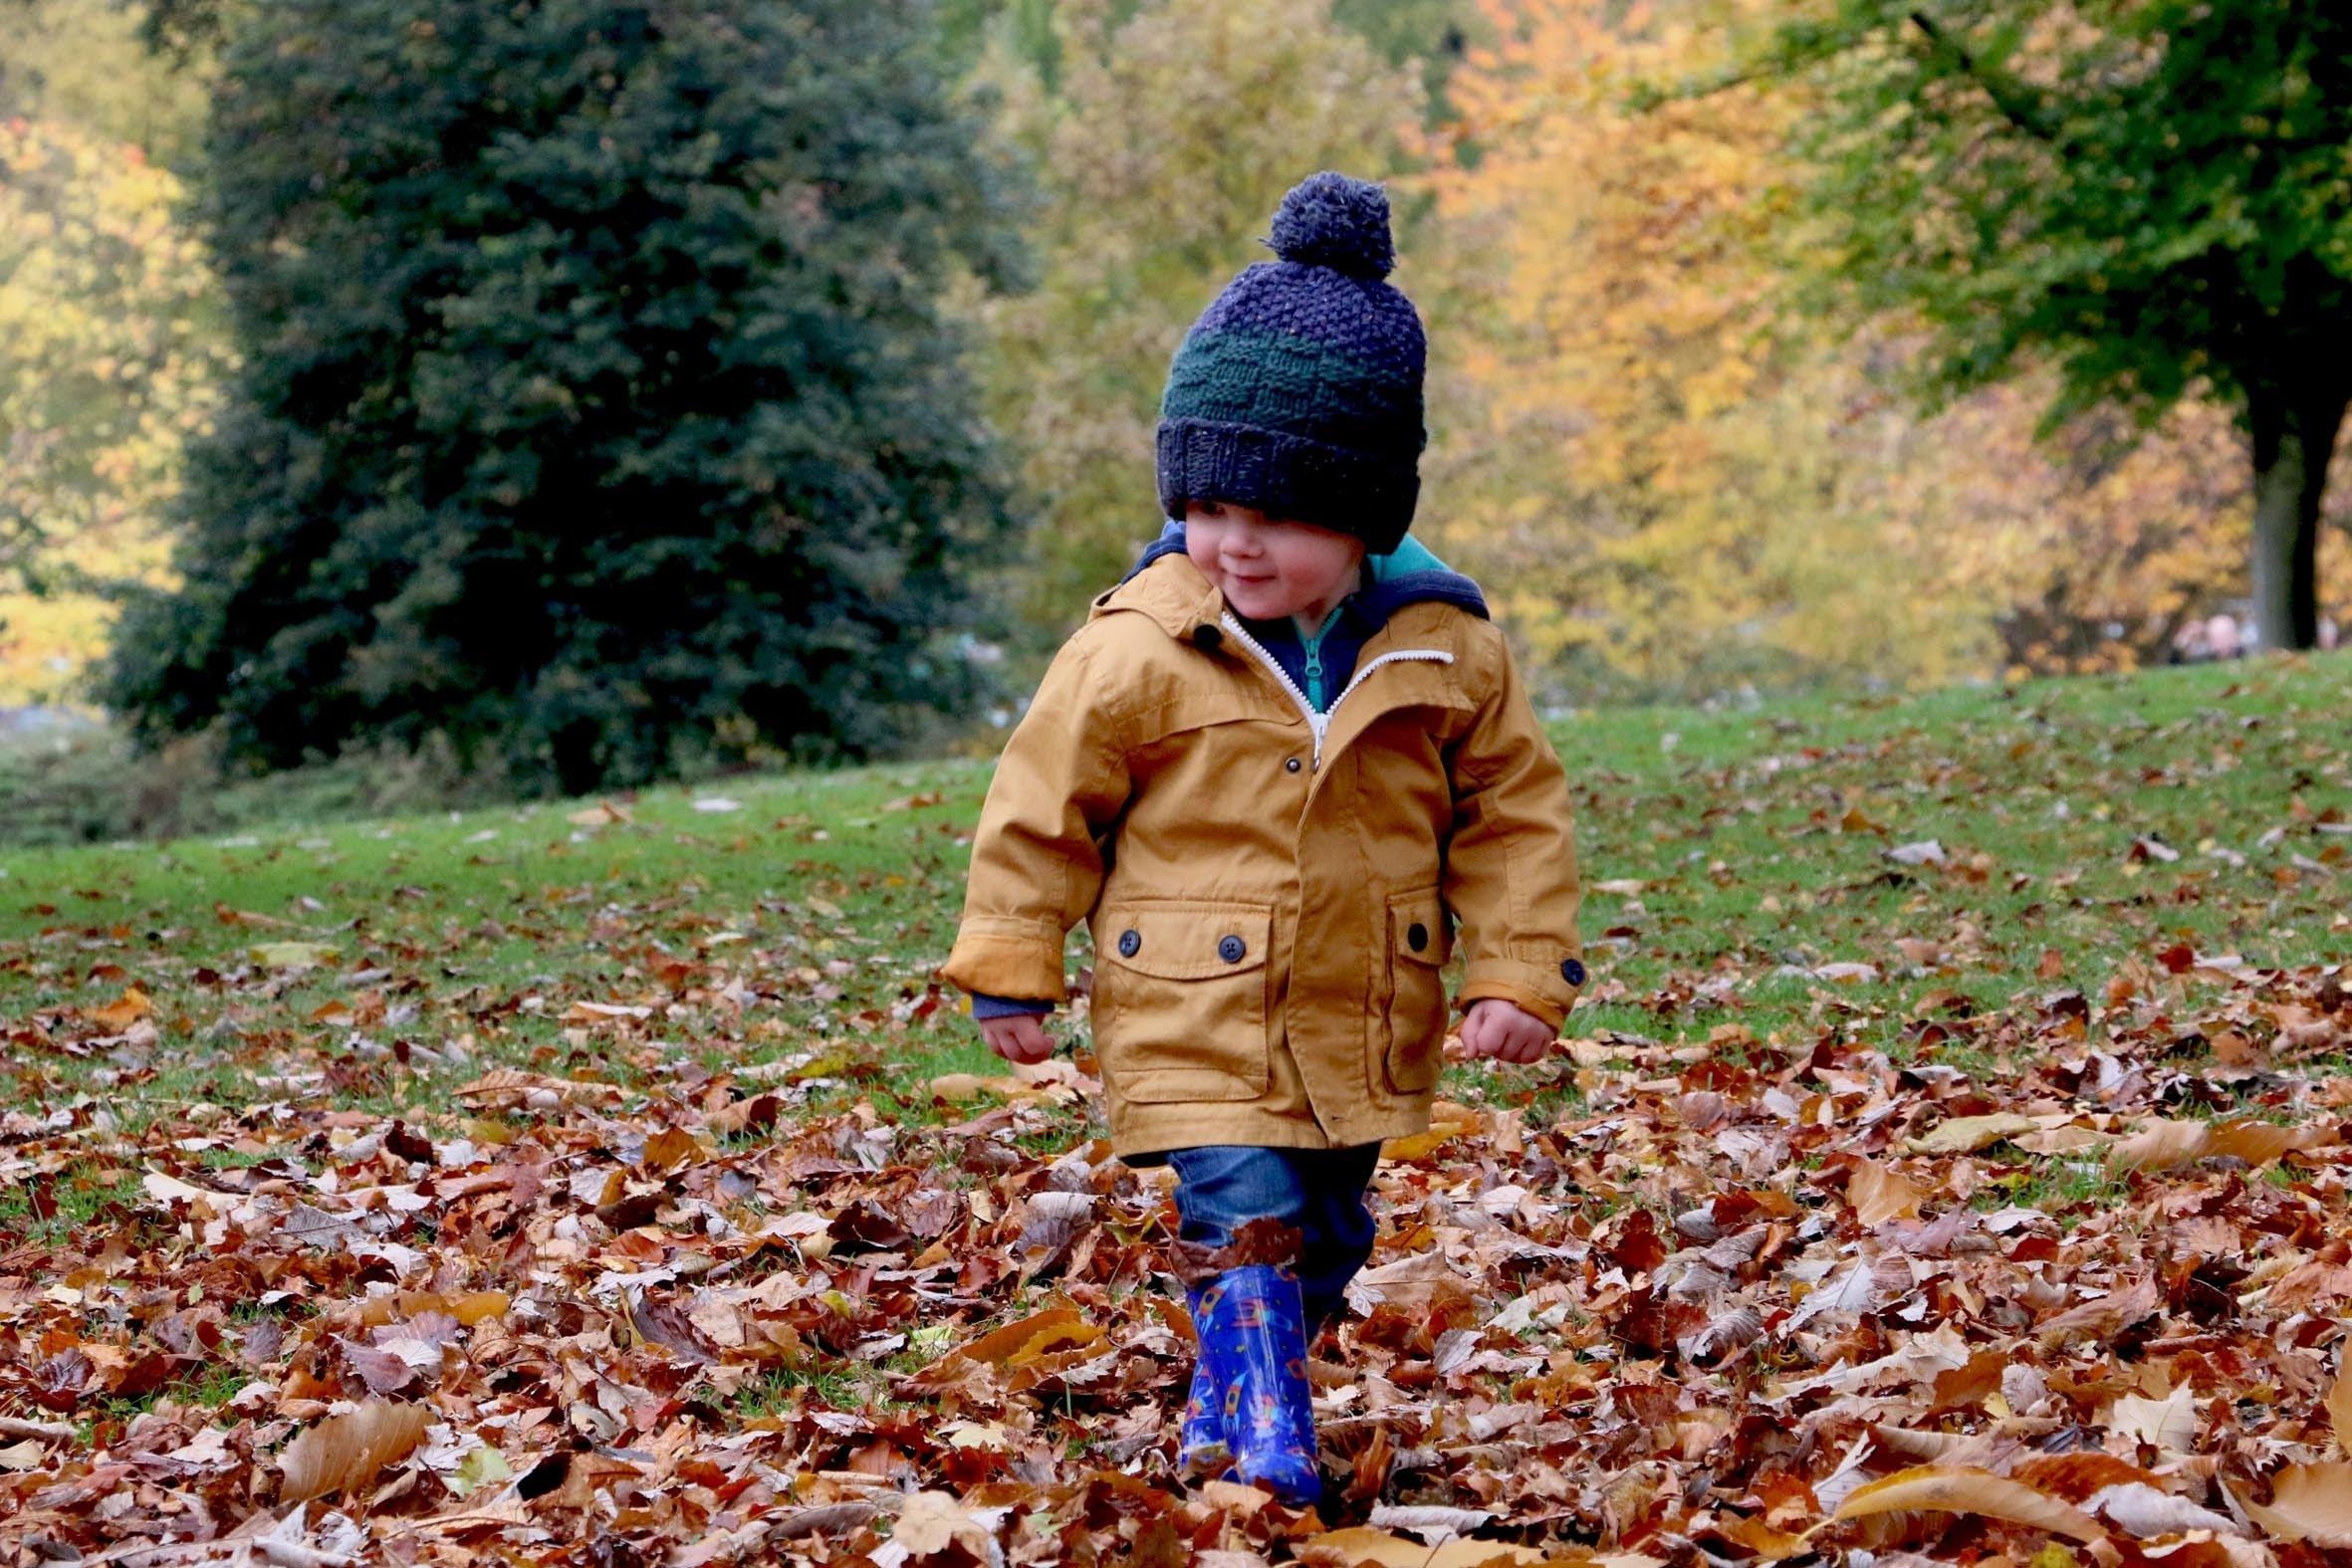 Small Child Walking on Fallen Leaves in Yard